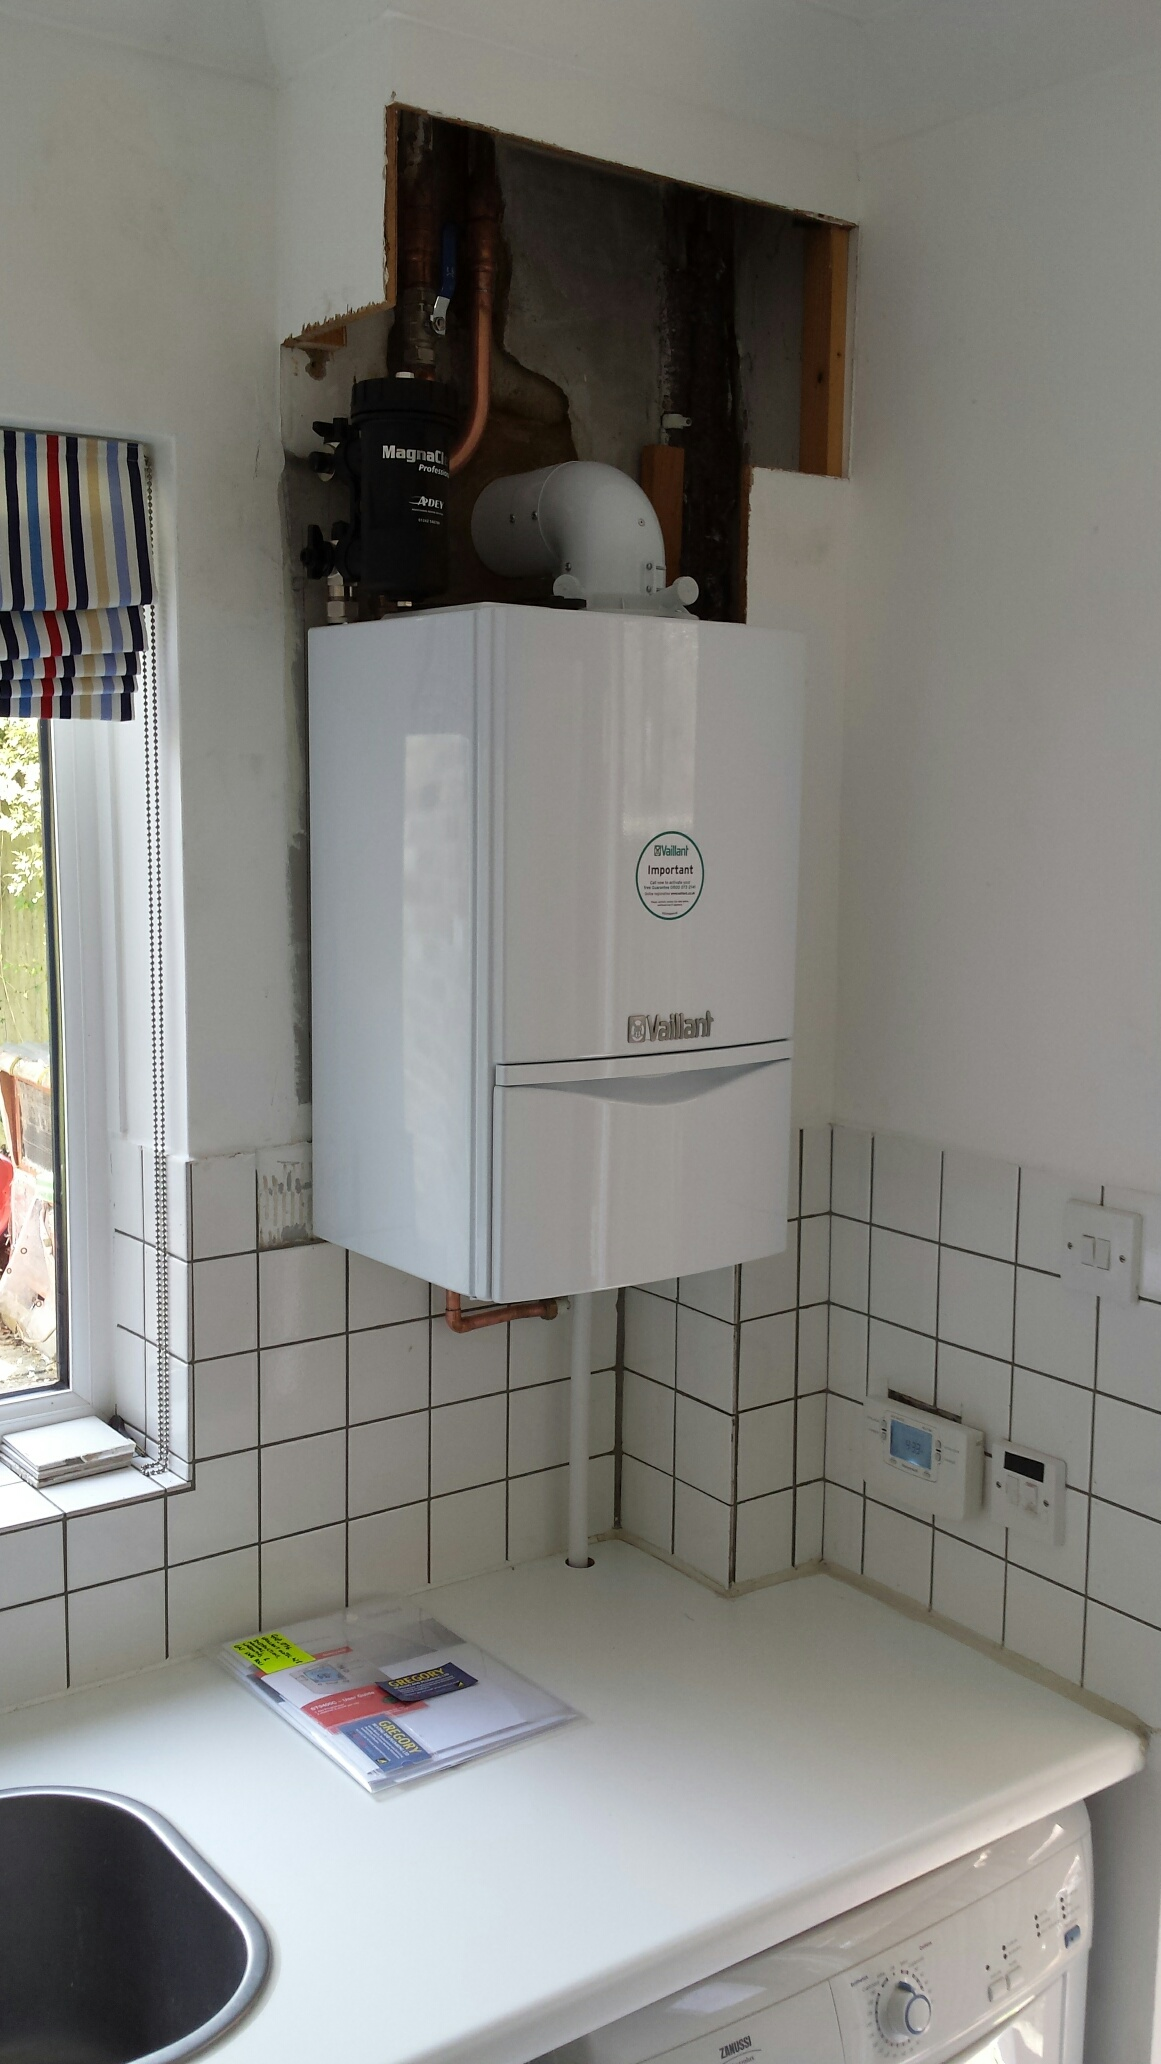 Vaillant ecotec plus 624 wiring diagram efcaviation jzgreentown vaillant ecotec plus 624 asfbconference2016 Image collections